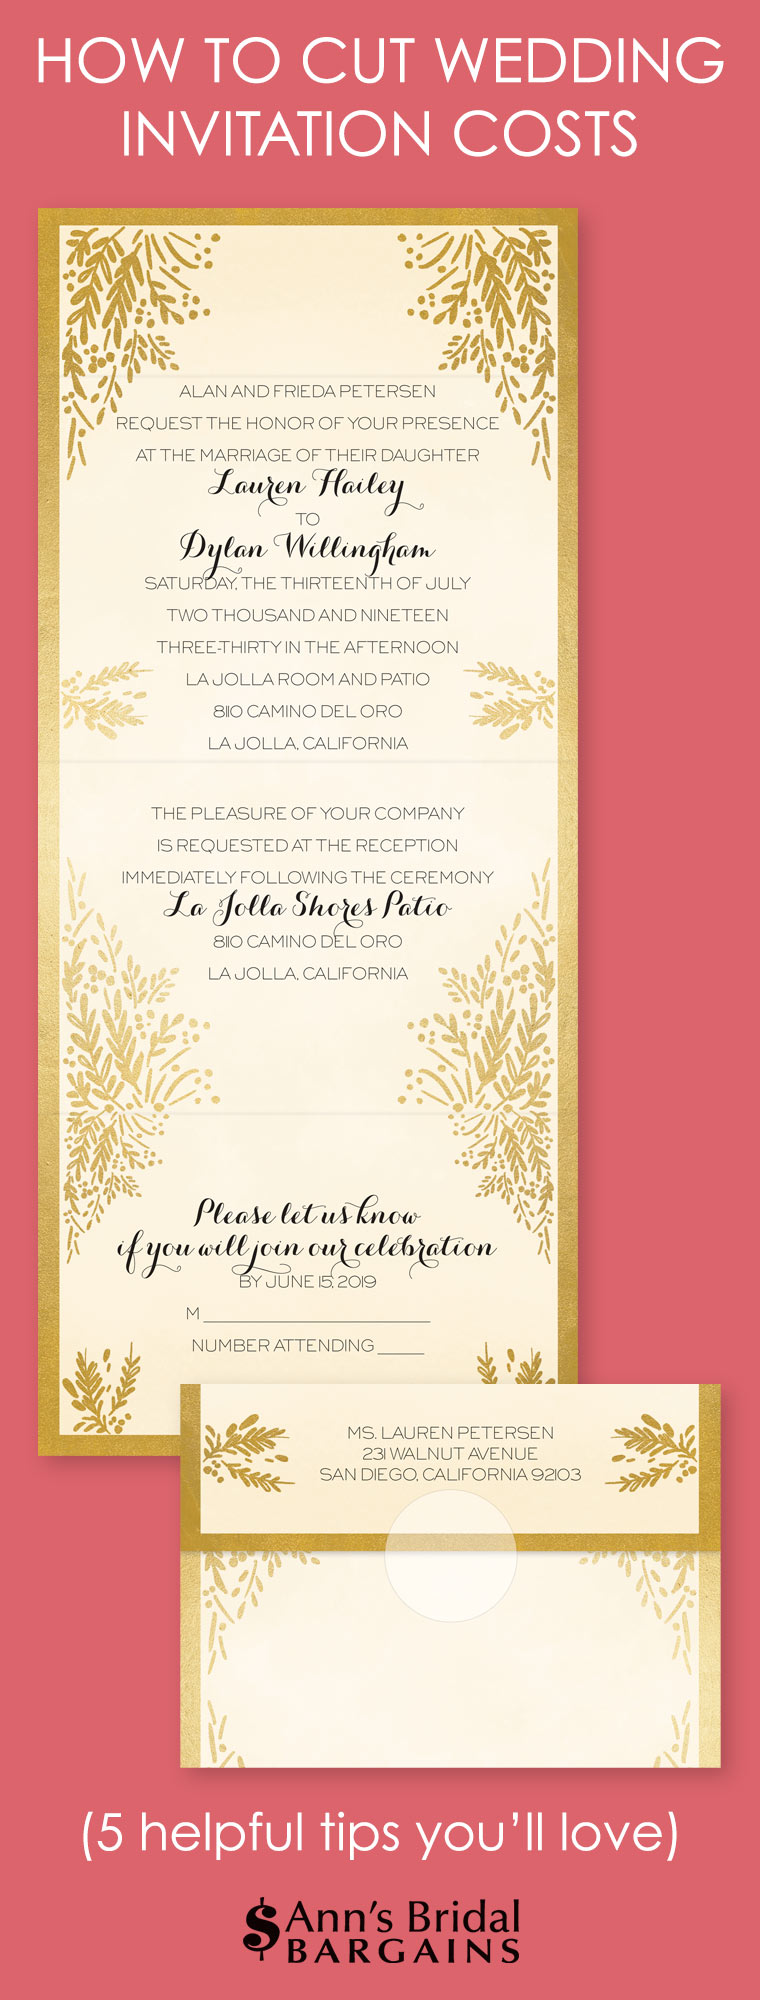 How to cut wedding invitation costs ann39s bridal bargains for 200 wedding invitations cost